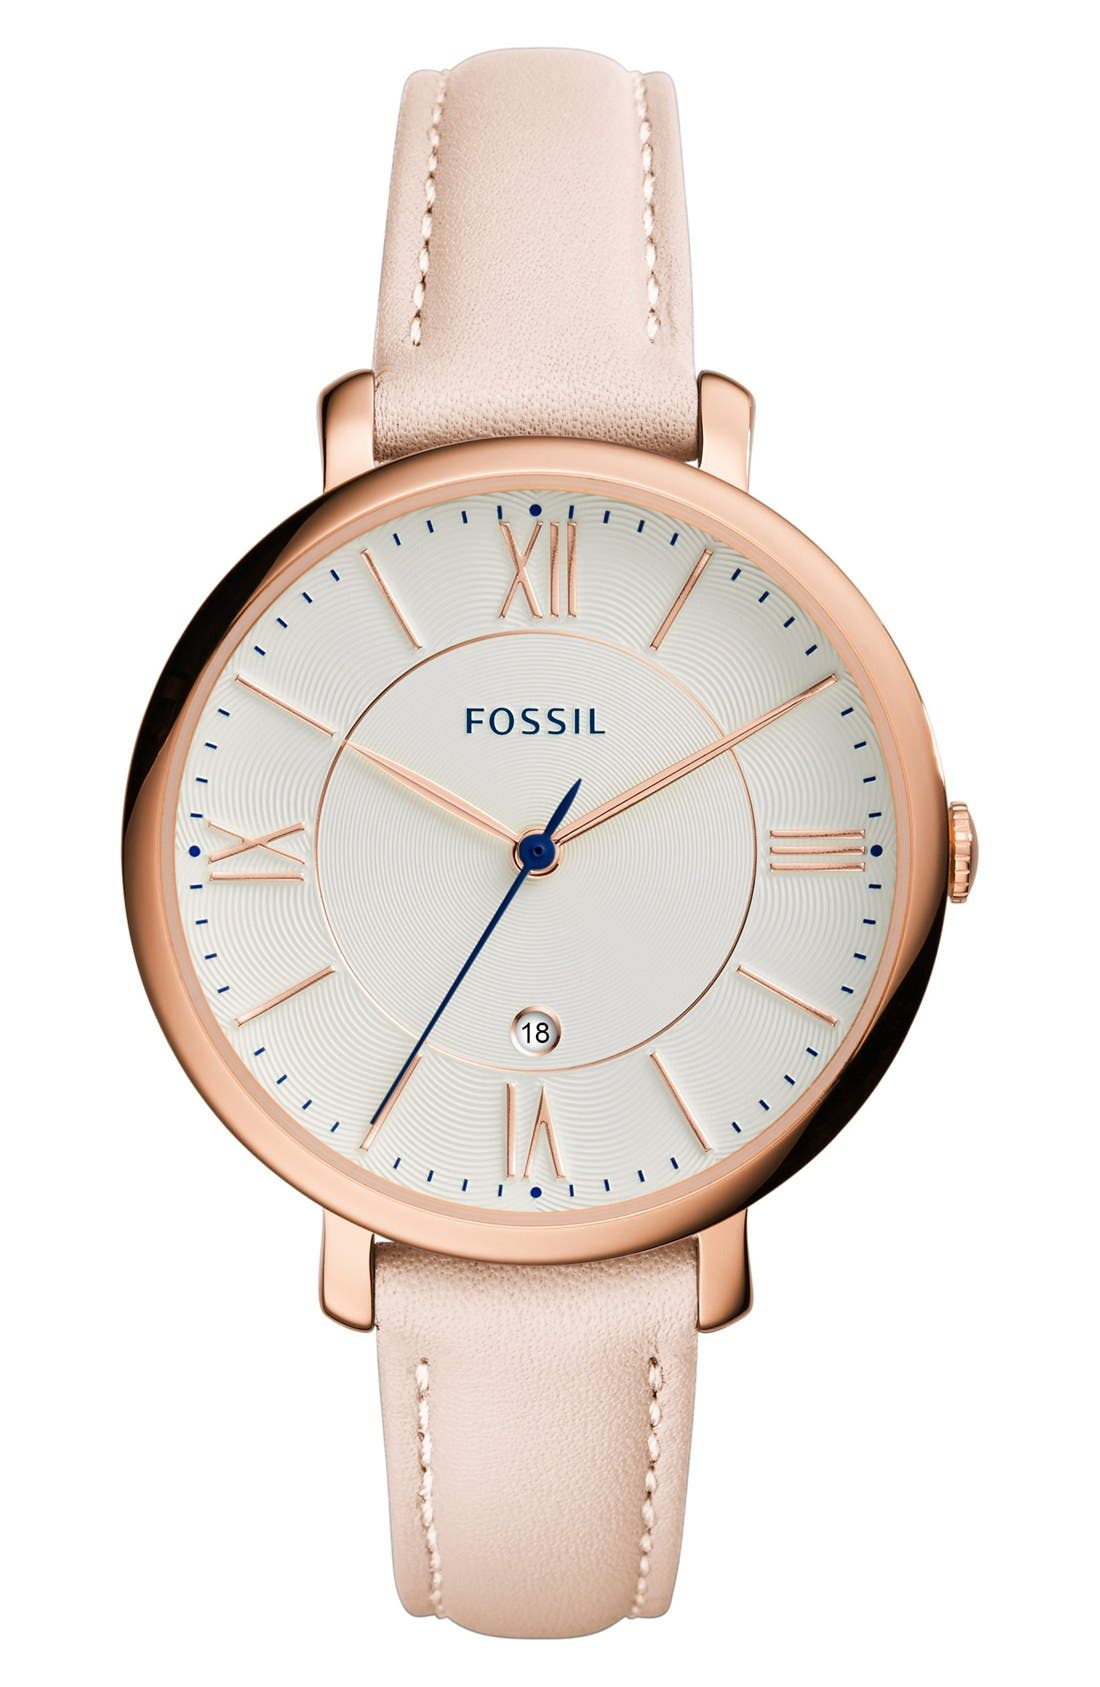 FOSSIL 'Jacqueline' Leather Strap Watch, 36mm, Main, color, BLUSH/ WHITE